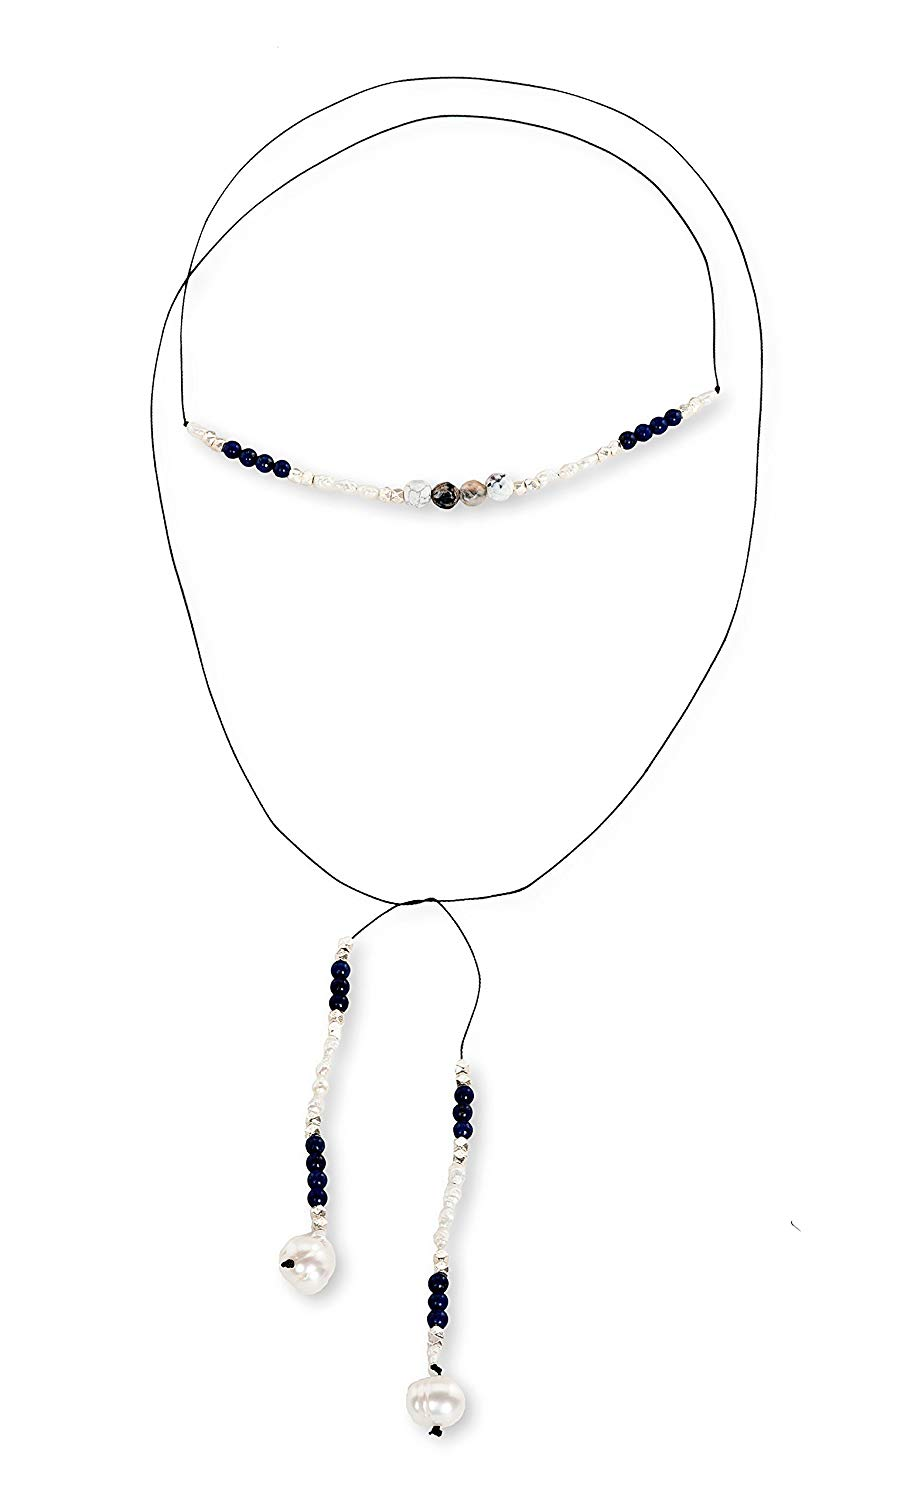 Handmade Leather Choker Necklace with Aquamarine Beads, Lapis, Freshwater Pearls, Sterling Silver Beads | Marina by Maya Fasthoff